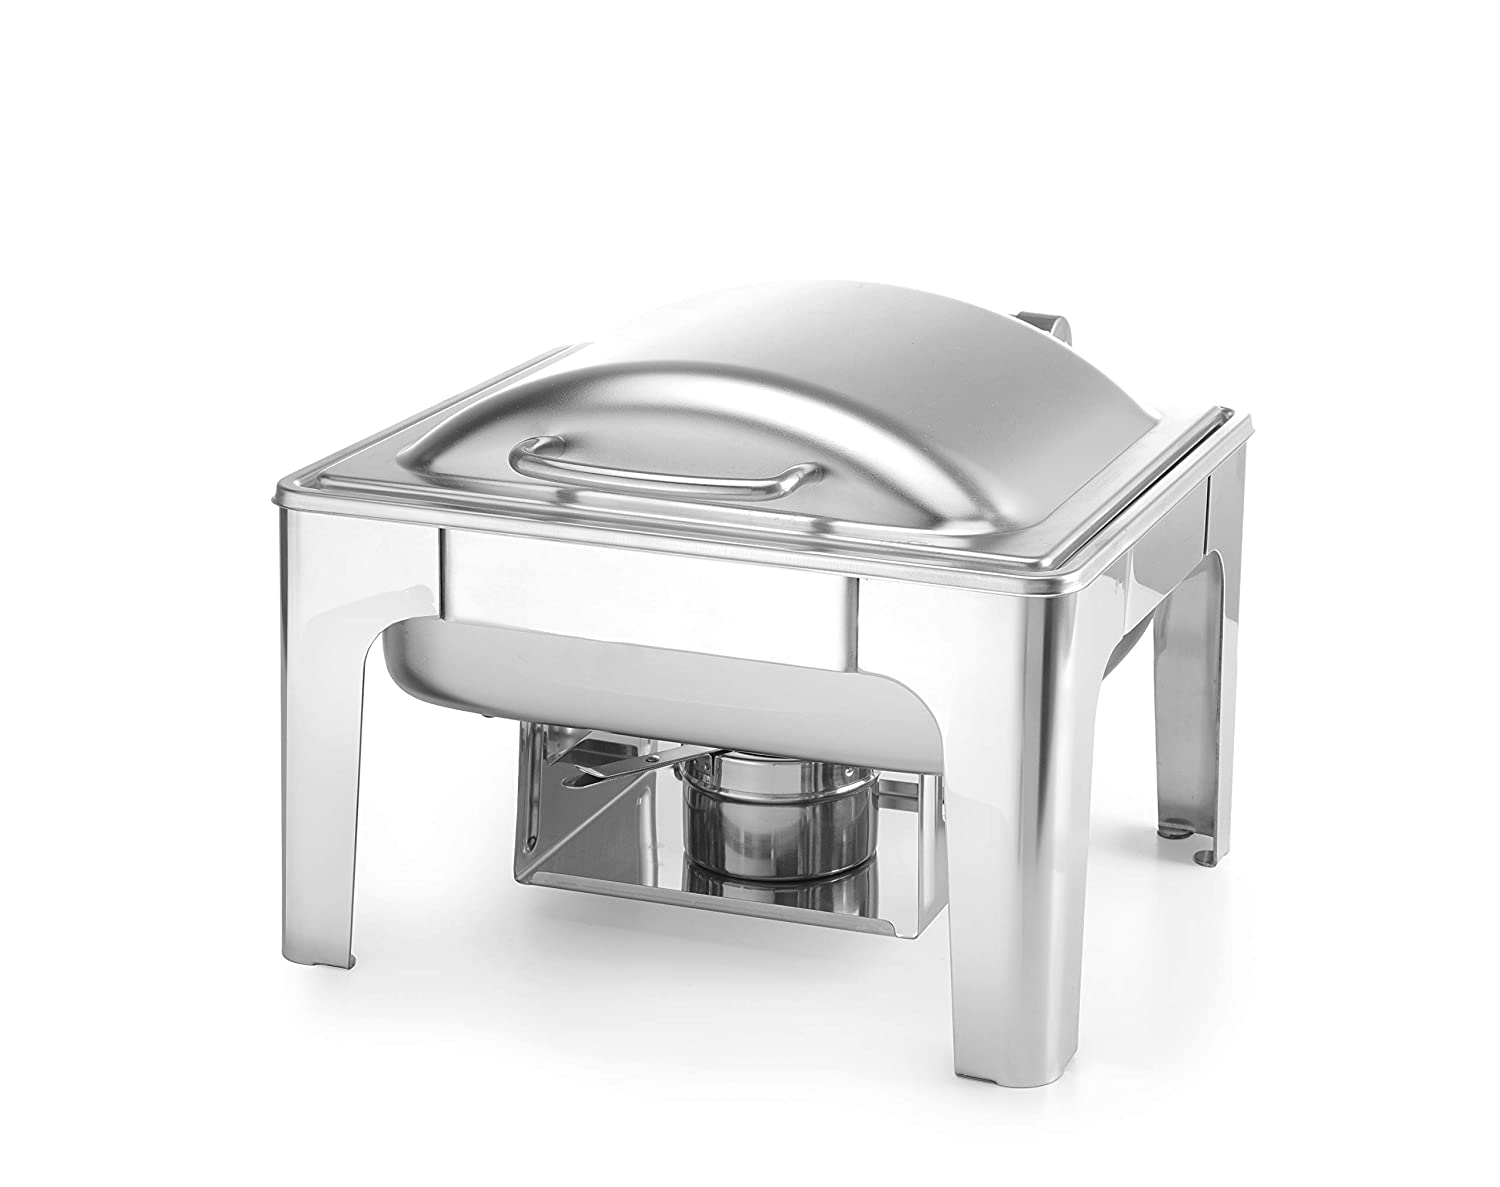 Chafing dish GN 1/2 finition satiné